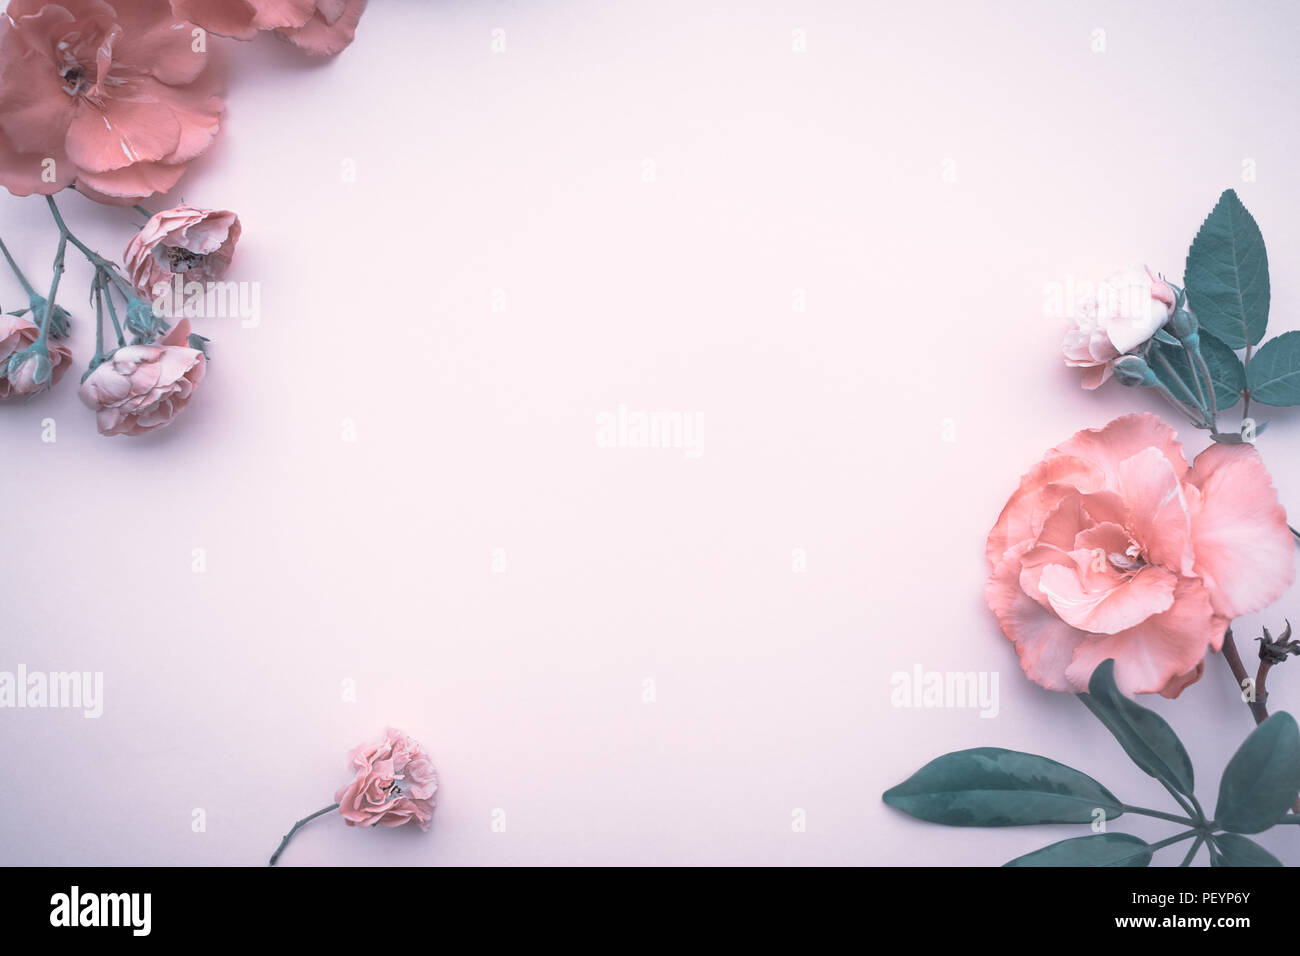 Gentle Floral Border Abstract Natural Wallpaper Baby Pink Roses